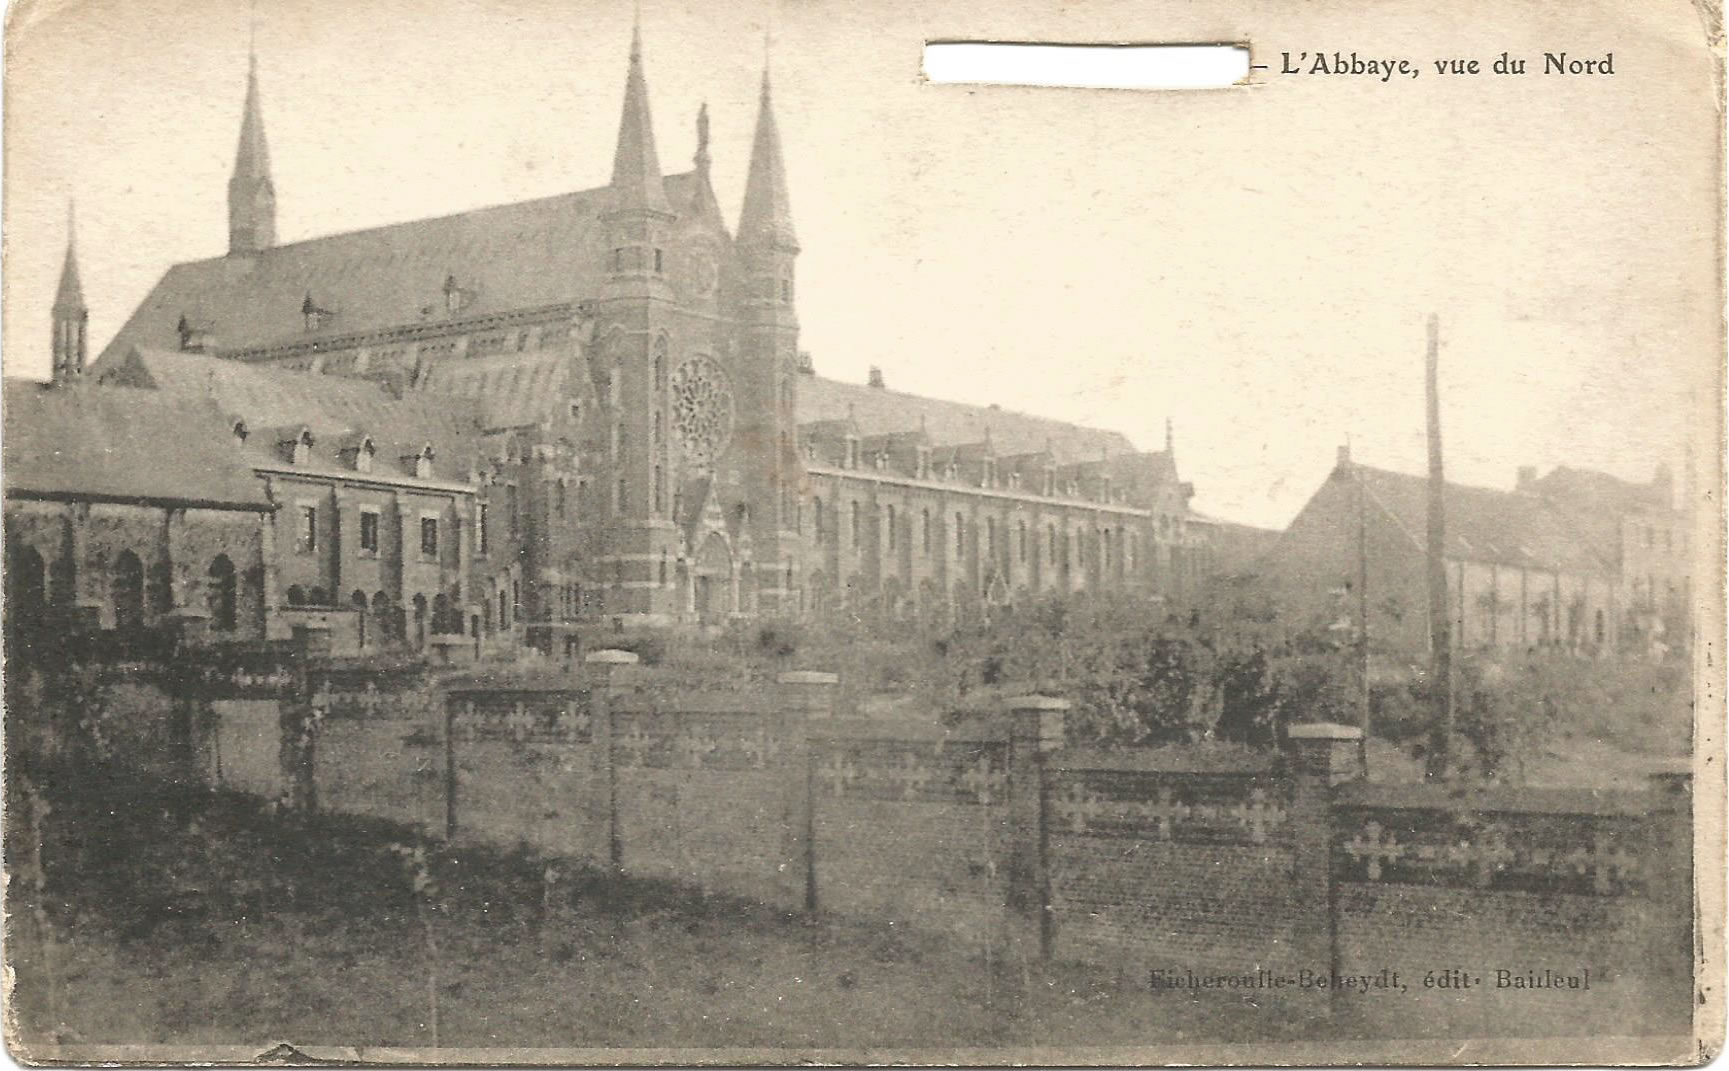 Postcard of the Abbey at Mont des Cats